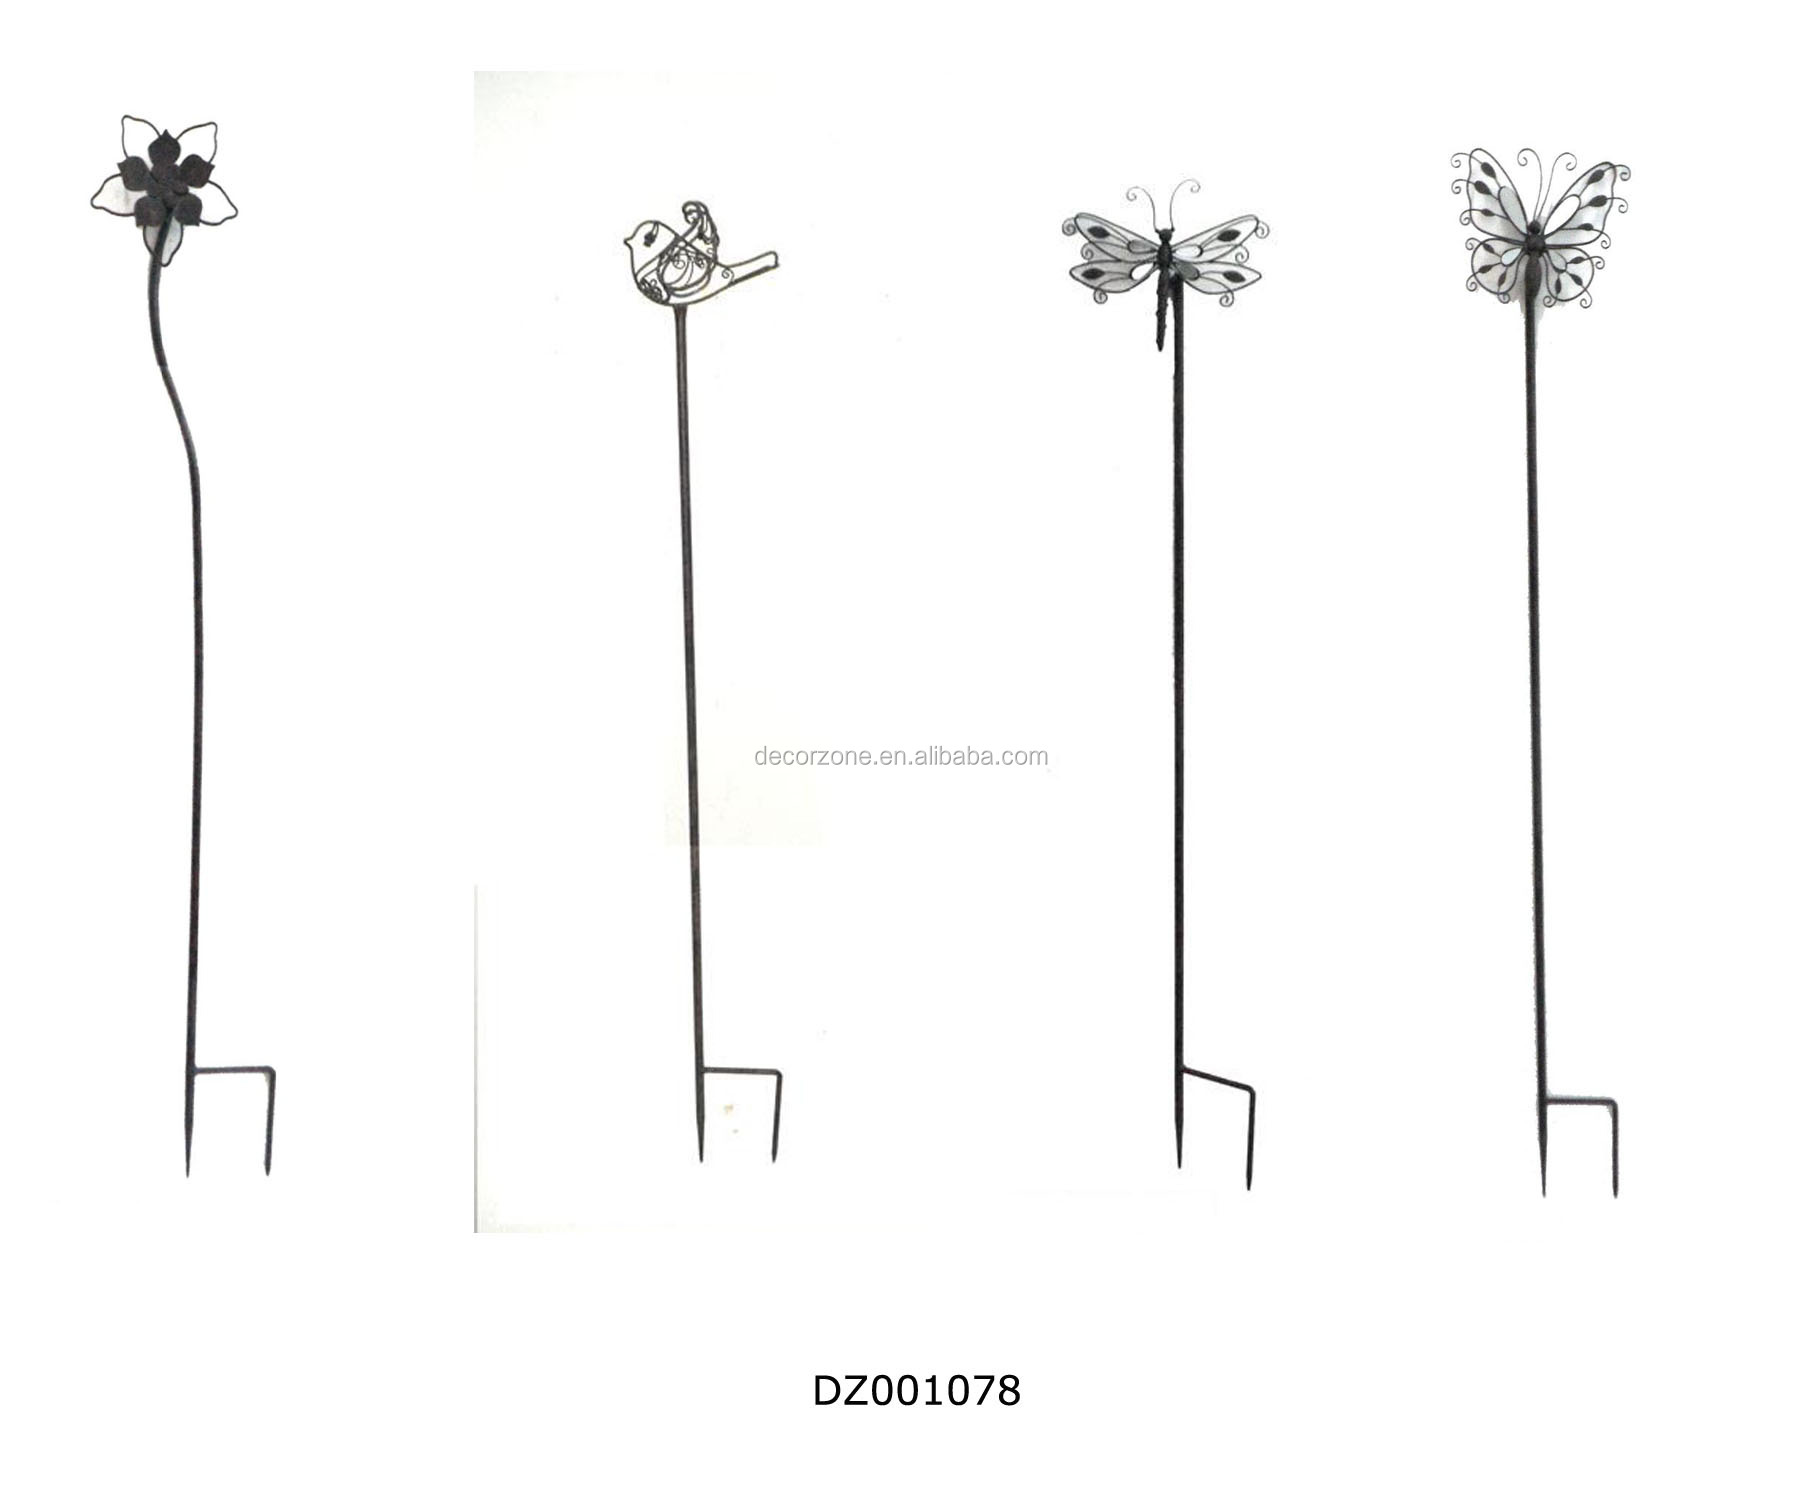 Elegant Metal Flower Garden Stakes, Metal Flower Garden Stakes Suppliers And  Manufacturers At Alibaba.com